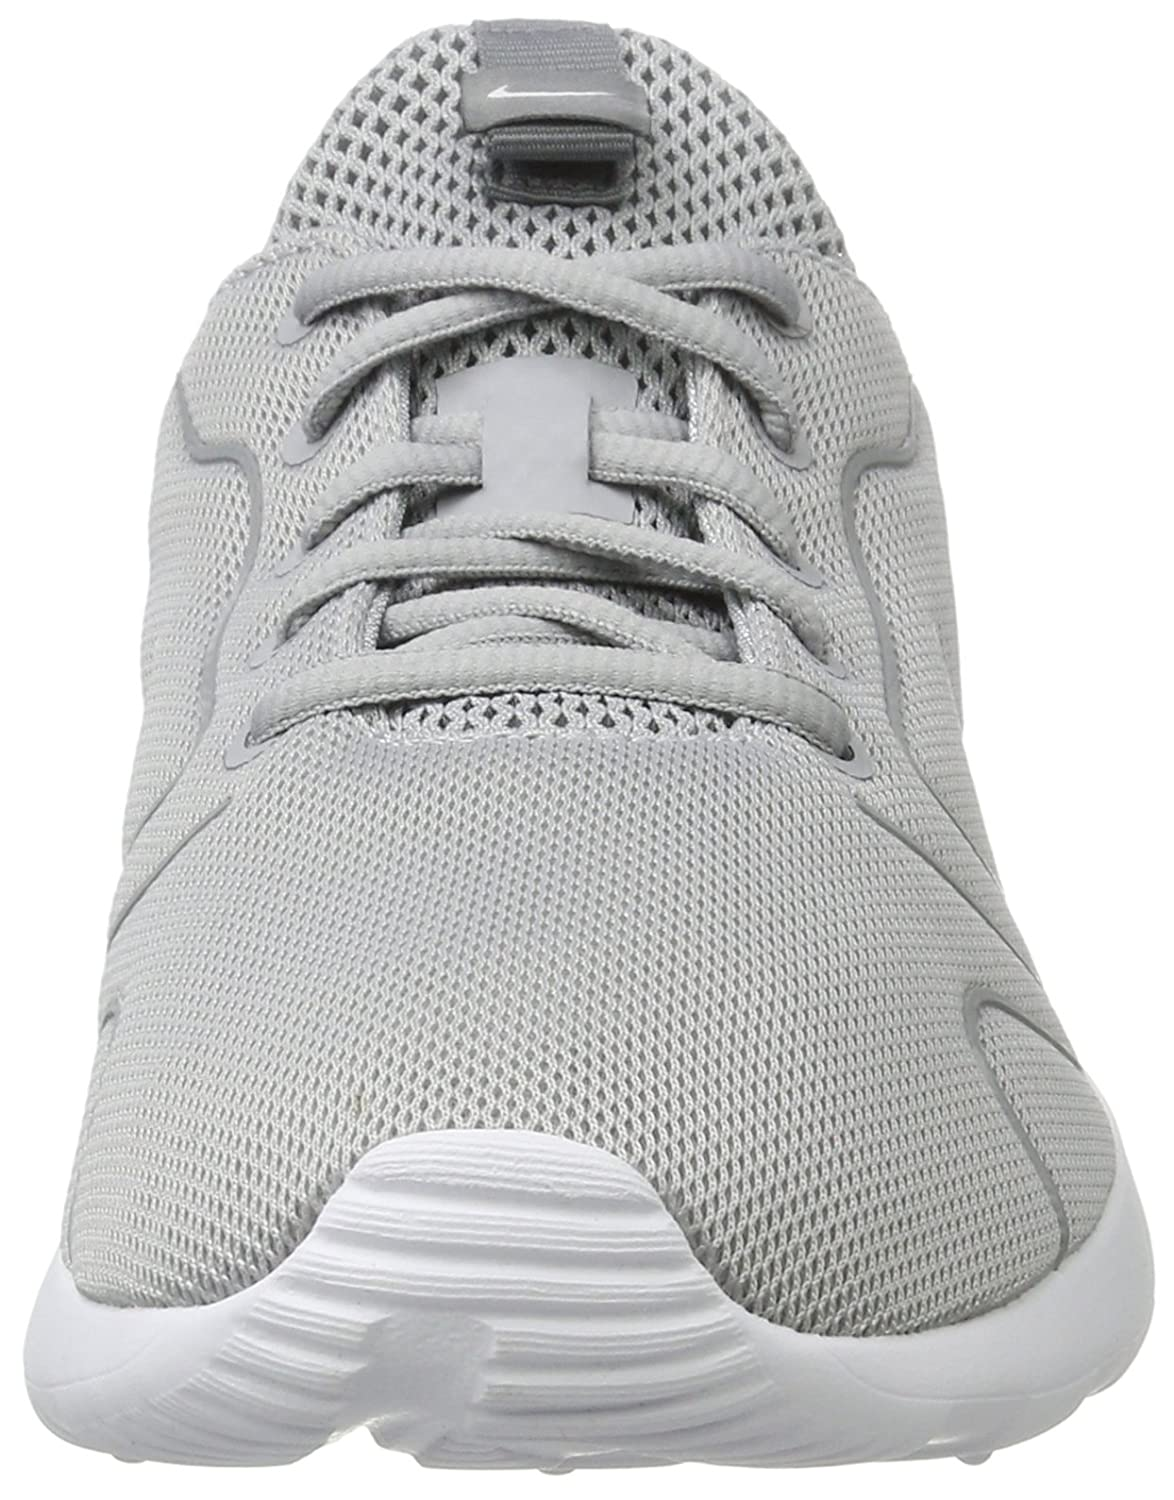 Nike Women s Kaishi 2.0 Low-Top Sneakers